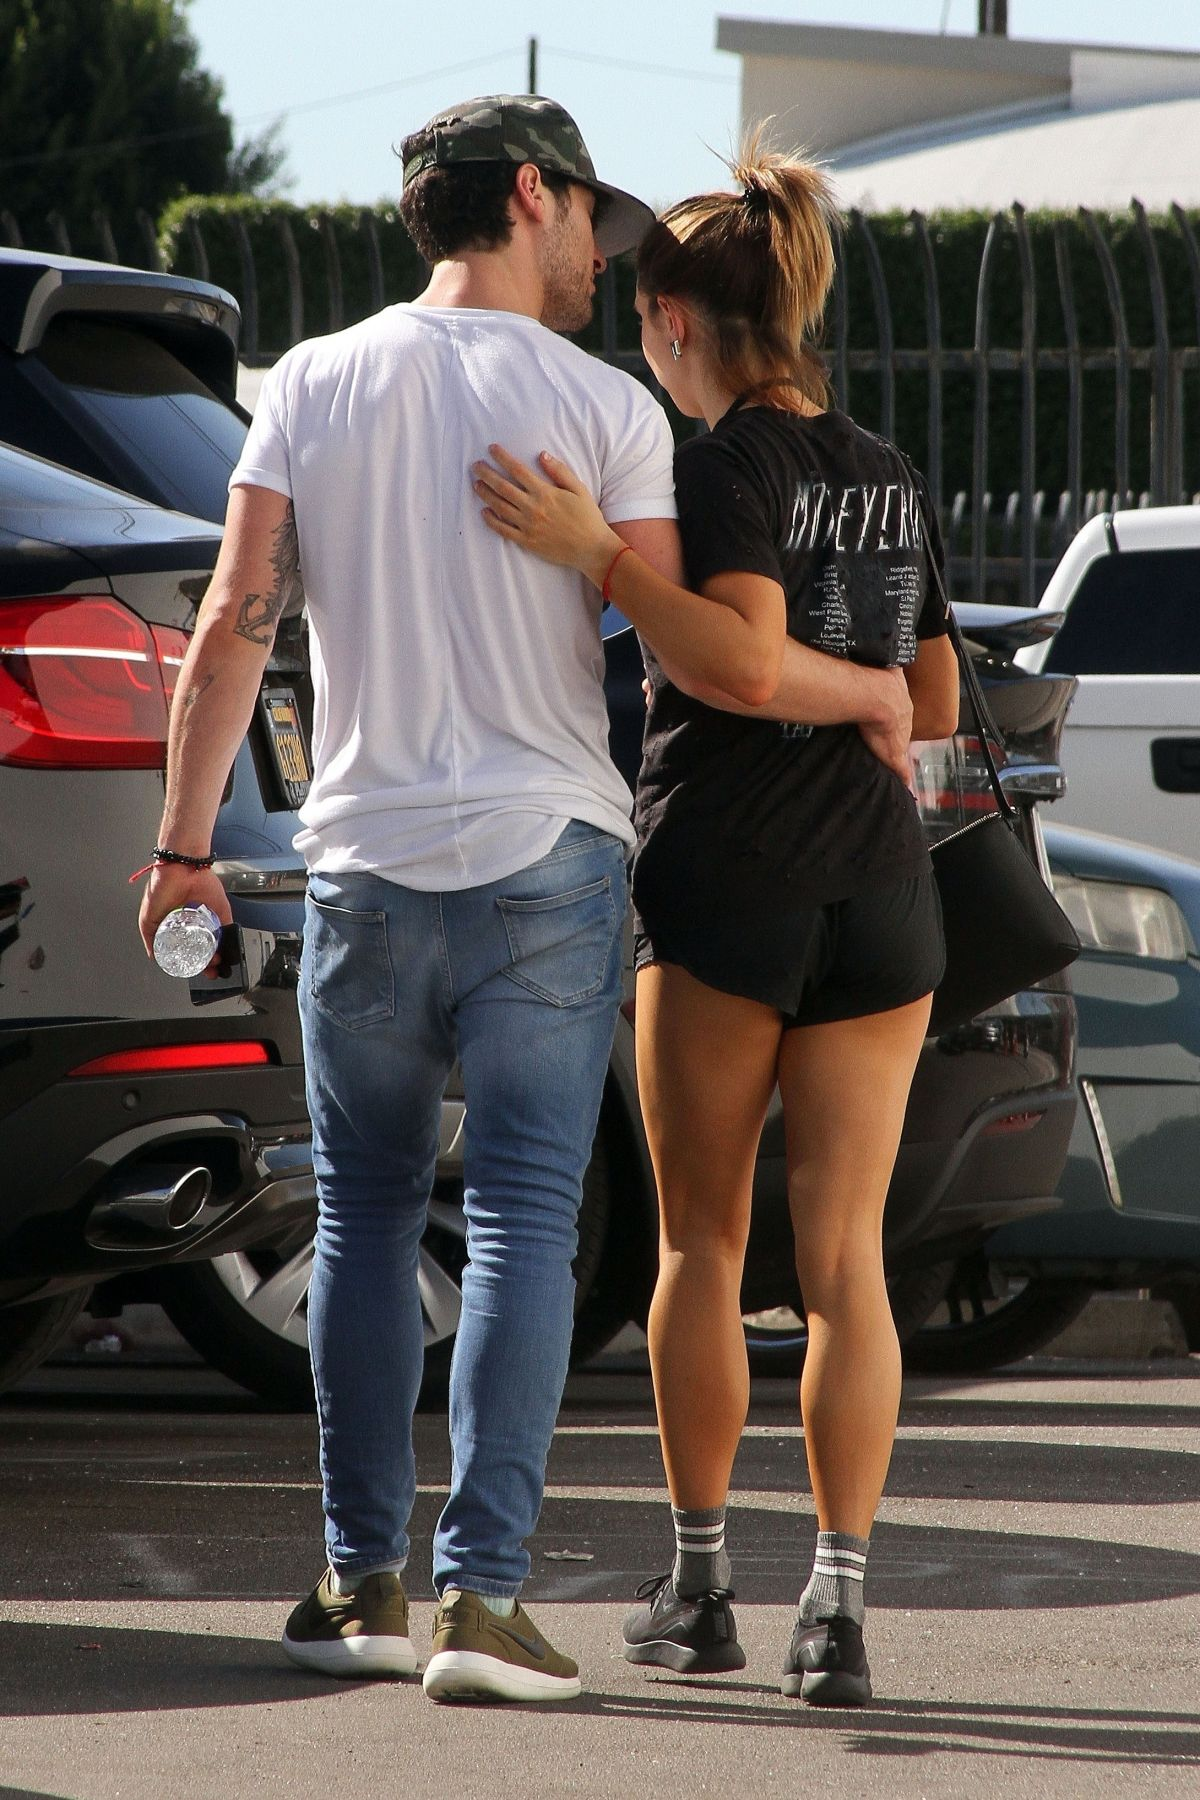 Val Chmerkovskiy & Jenna Johnson Spotted together after their dance practice at Dancing With The Stars Studios in Los Angeles